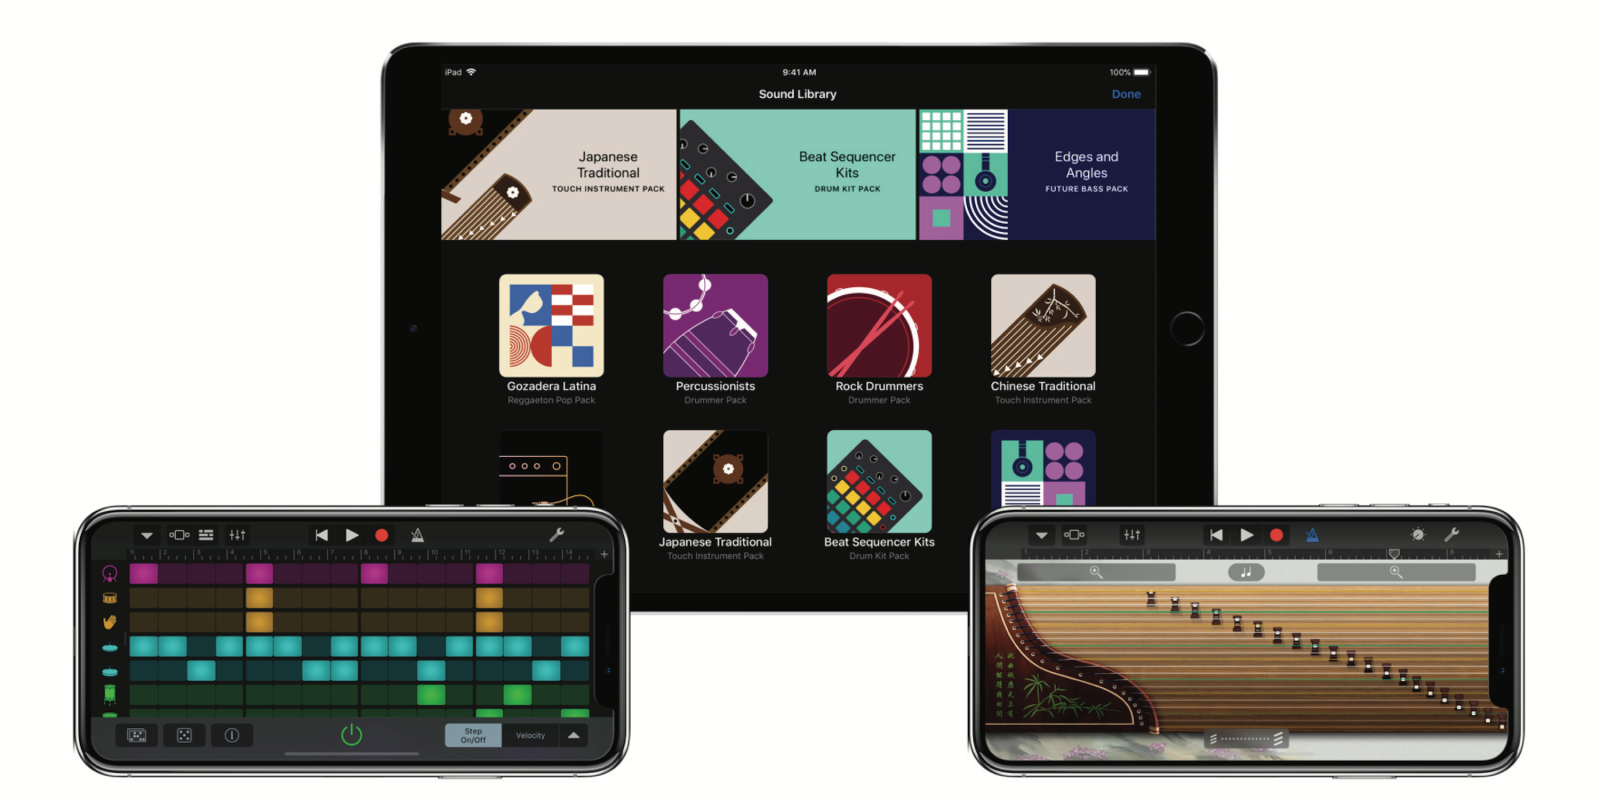 GarageBand 2 3 adds new Sound Library, Beat Sequencer